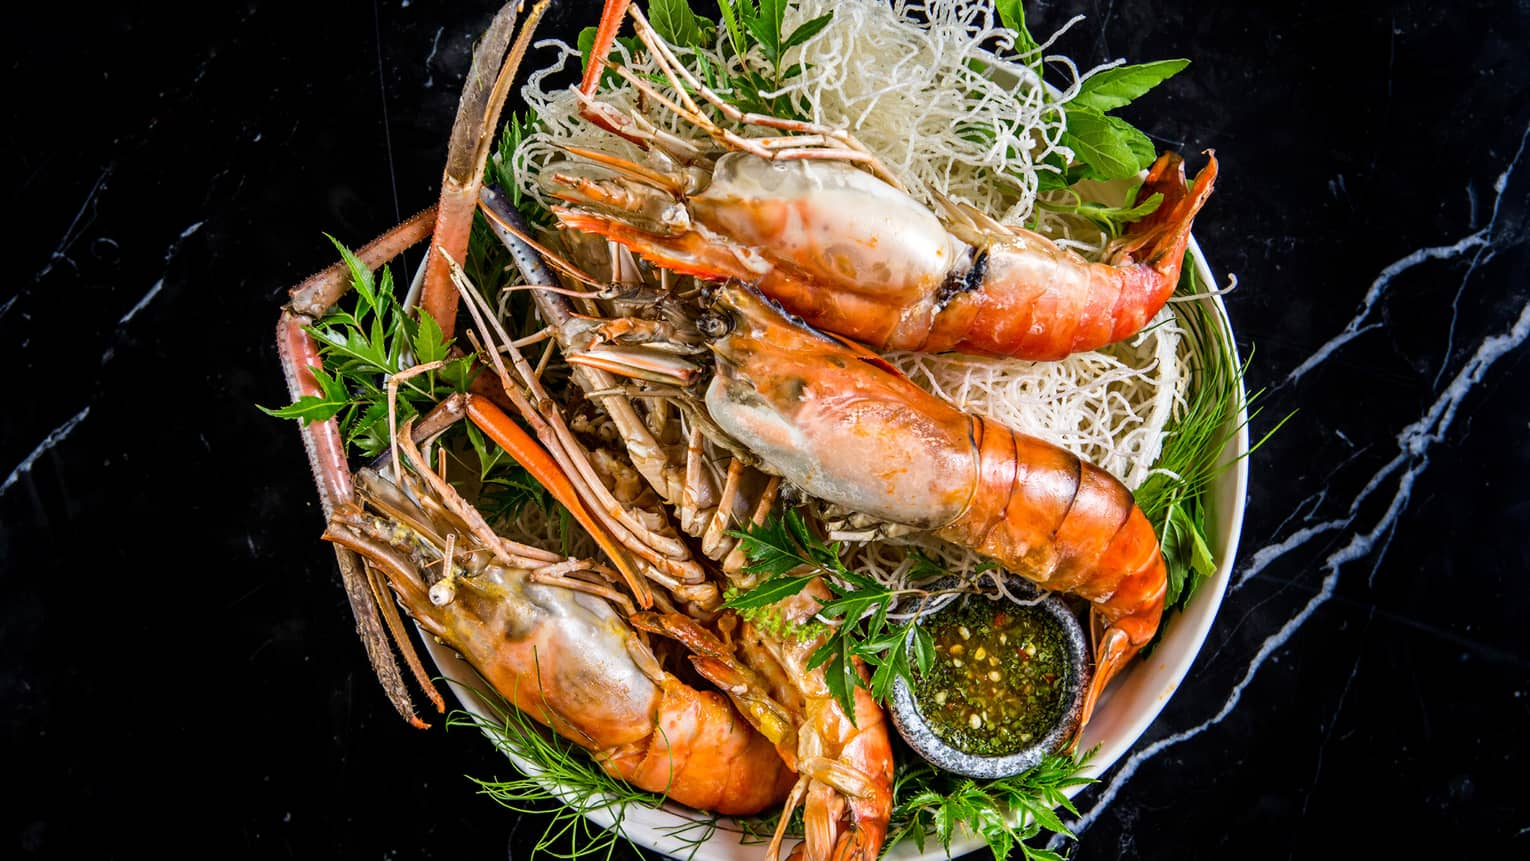 Goong Mae Narm Yang giant cooked river prawn shrimp on bed of seaweed